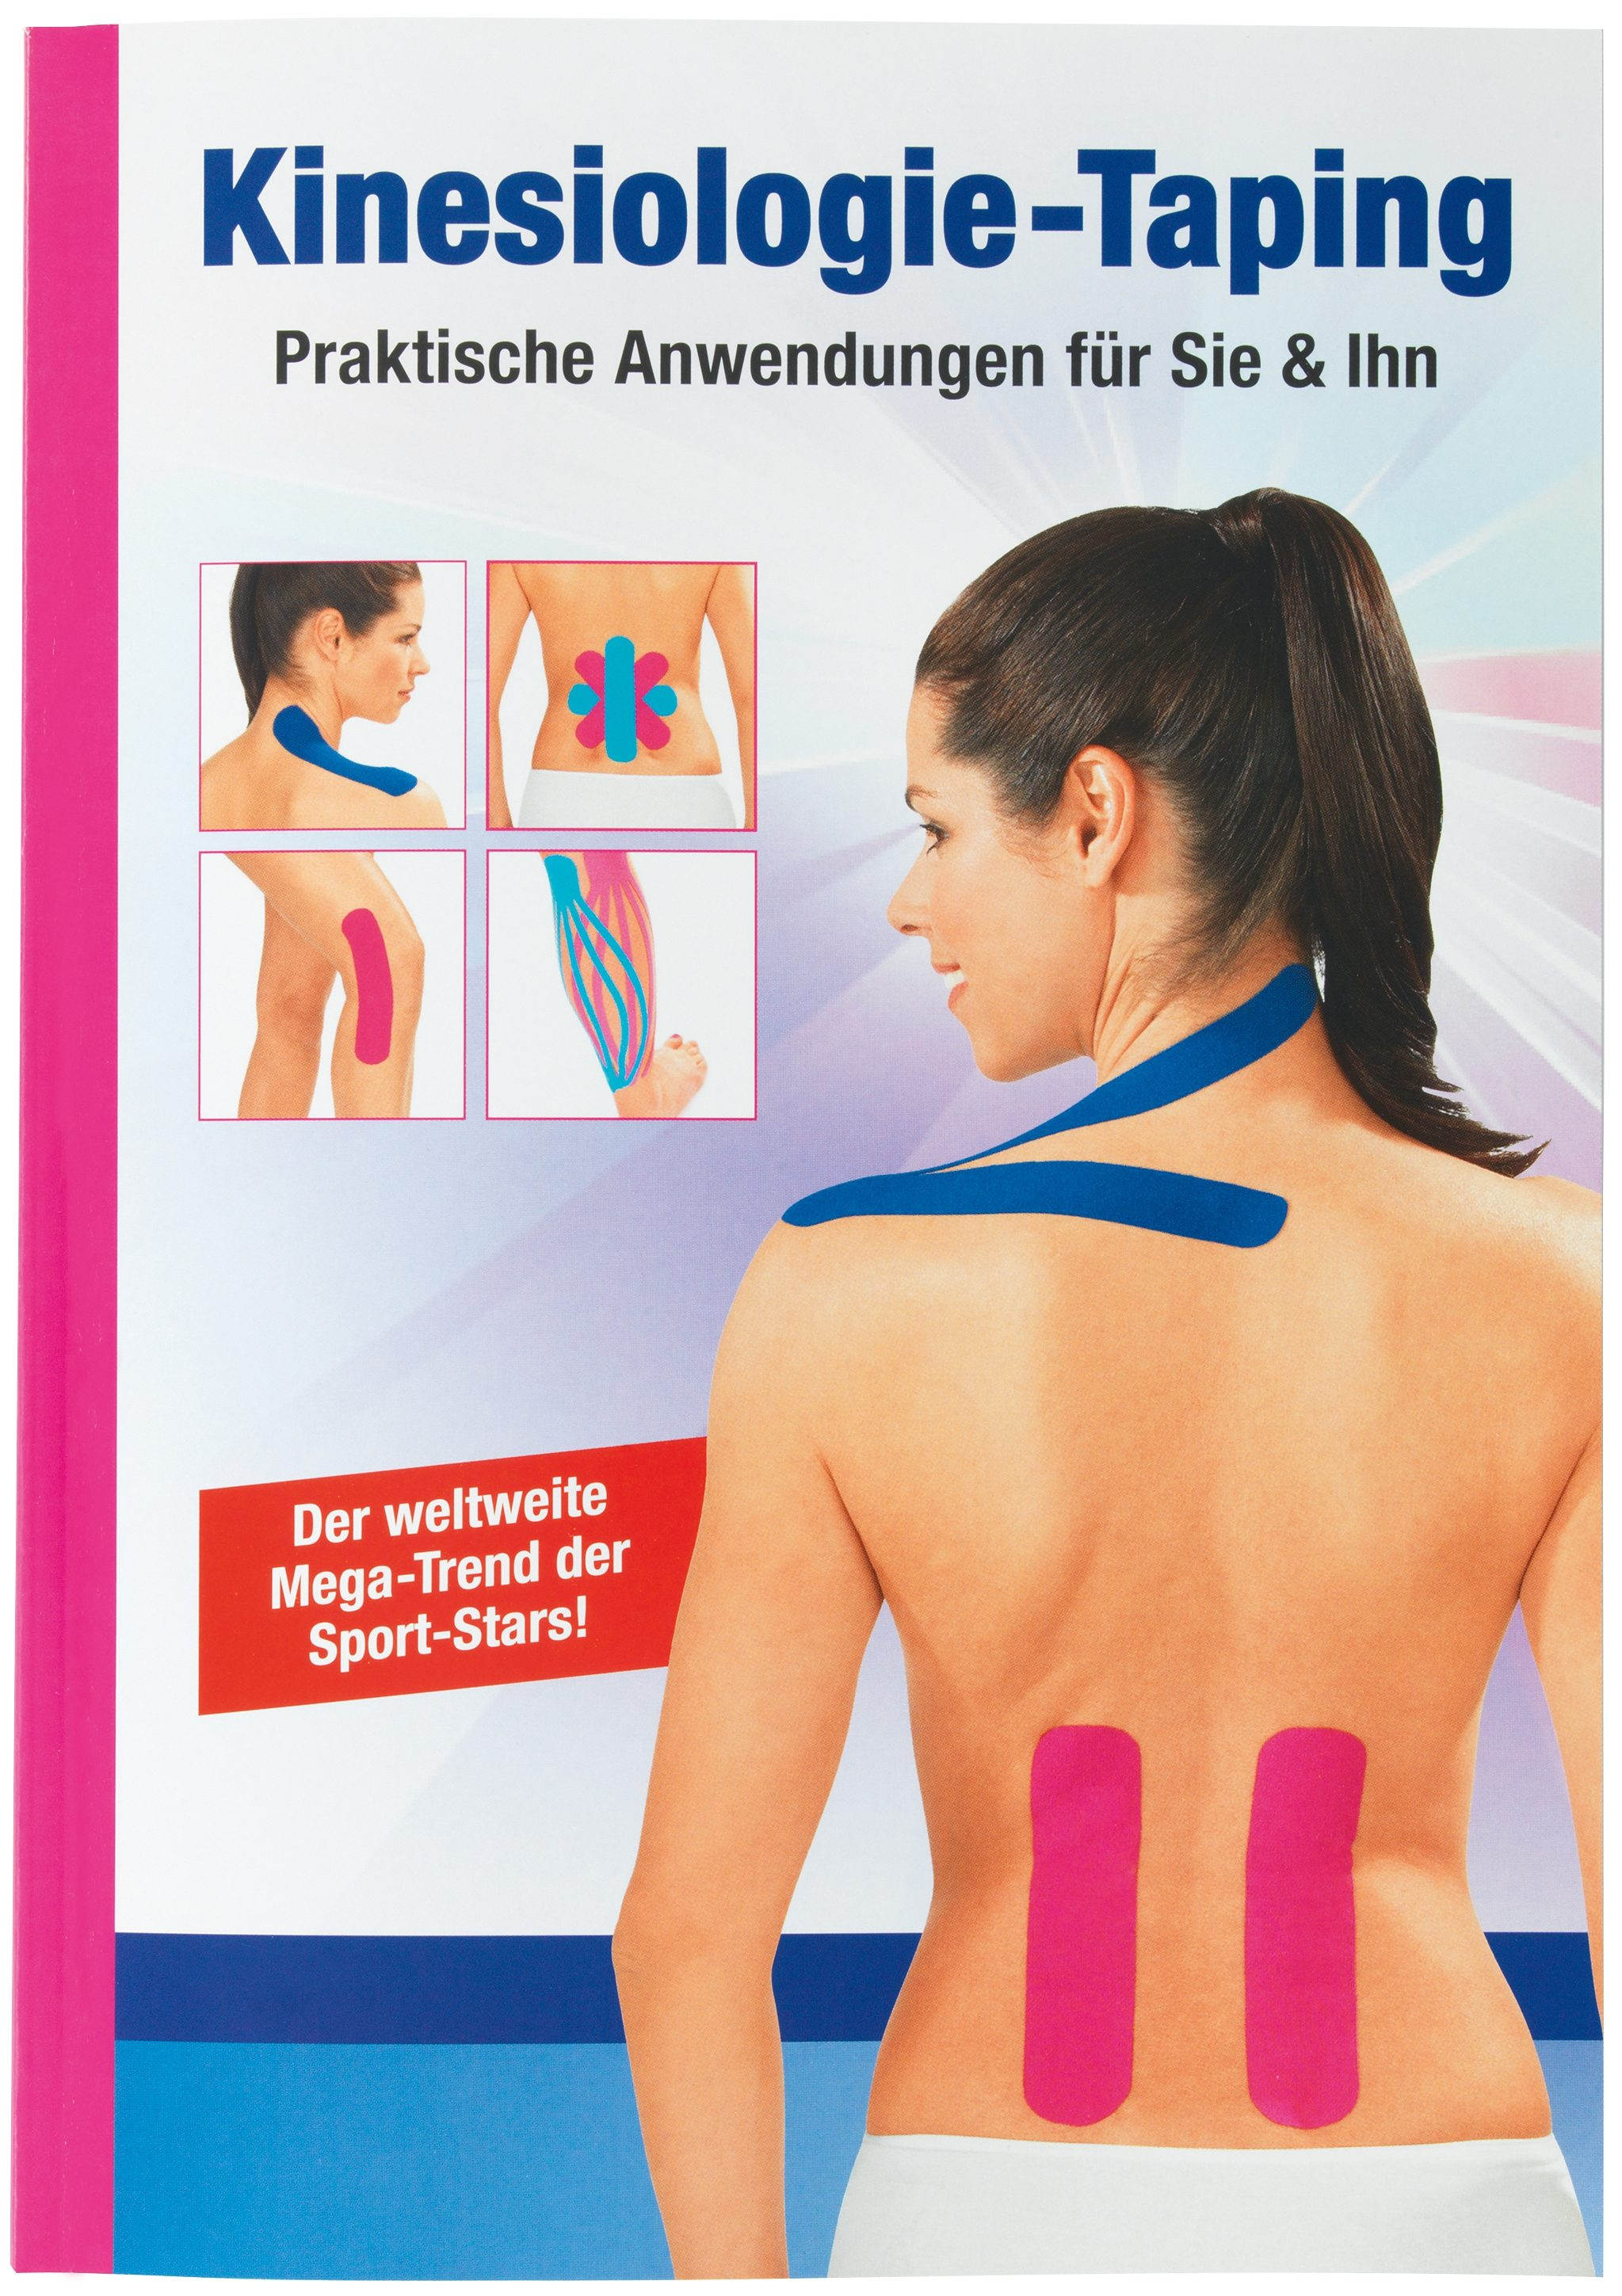 Kinesiologie-Taping Buch